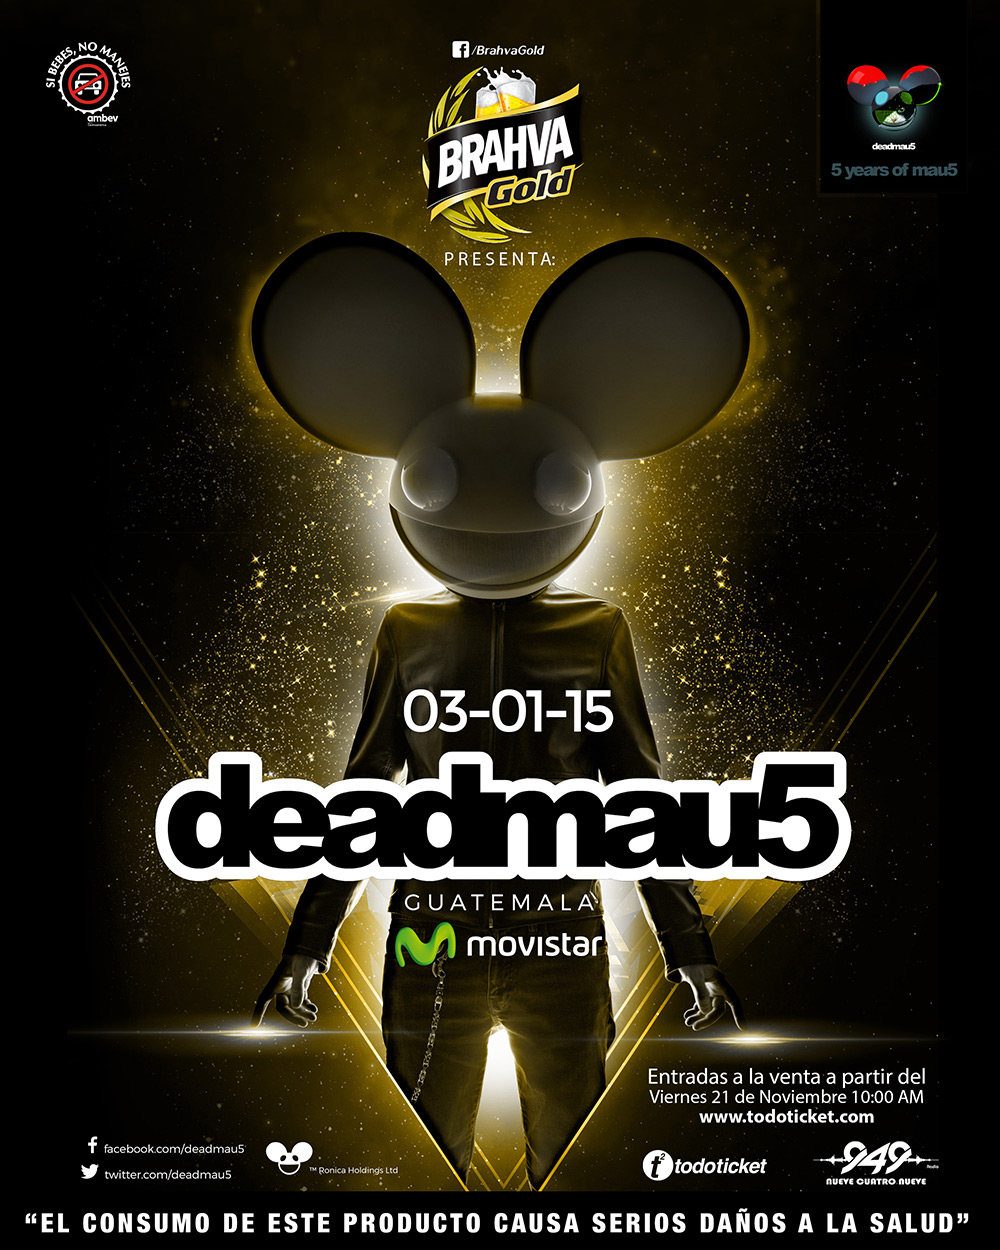 download → Deadmau5 - live at 5 Years Of Mau5, Guatemala - 03-Jan-2015